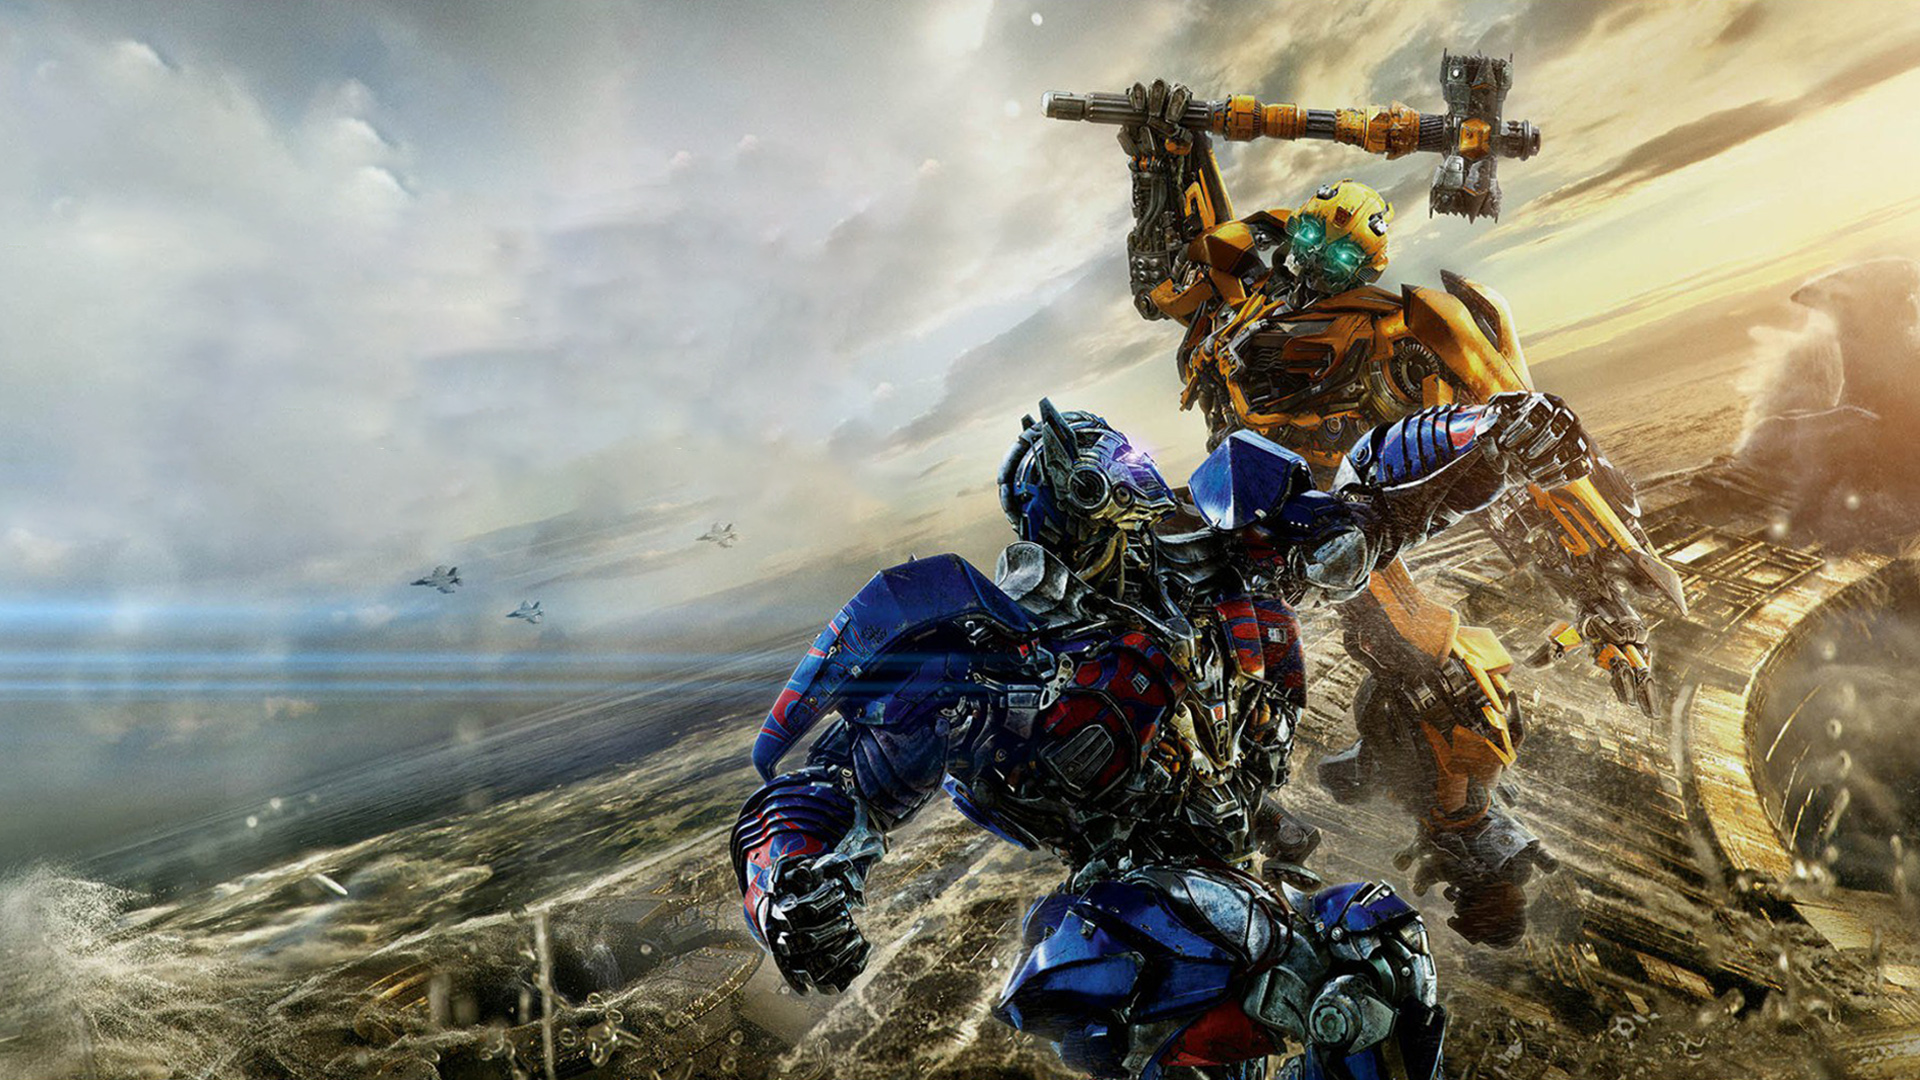 Transformers The Last Knight Wallpaper By The Dark Mamba 995 On